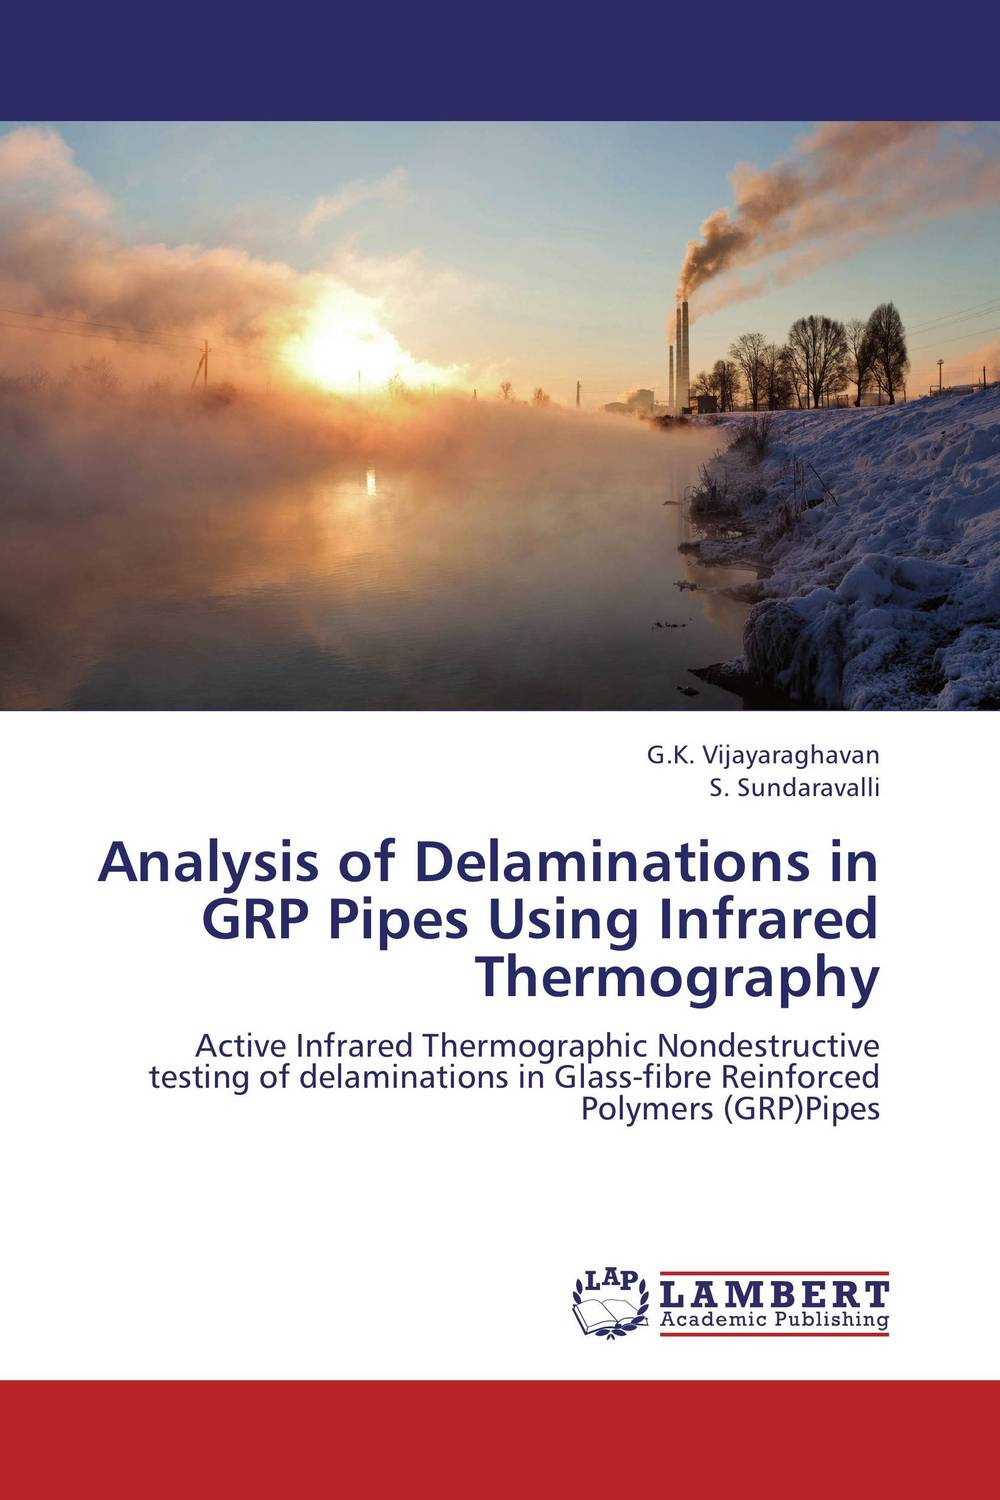 Analysis of Delaminations in GRP Pipes Using Infrared Thermography кухонная мойка ukinox grp 693 503 15gt8p 1r